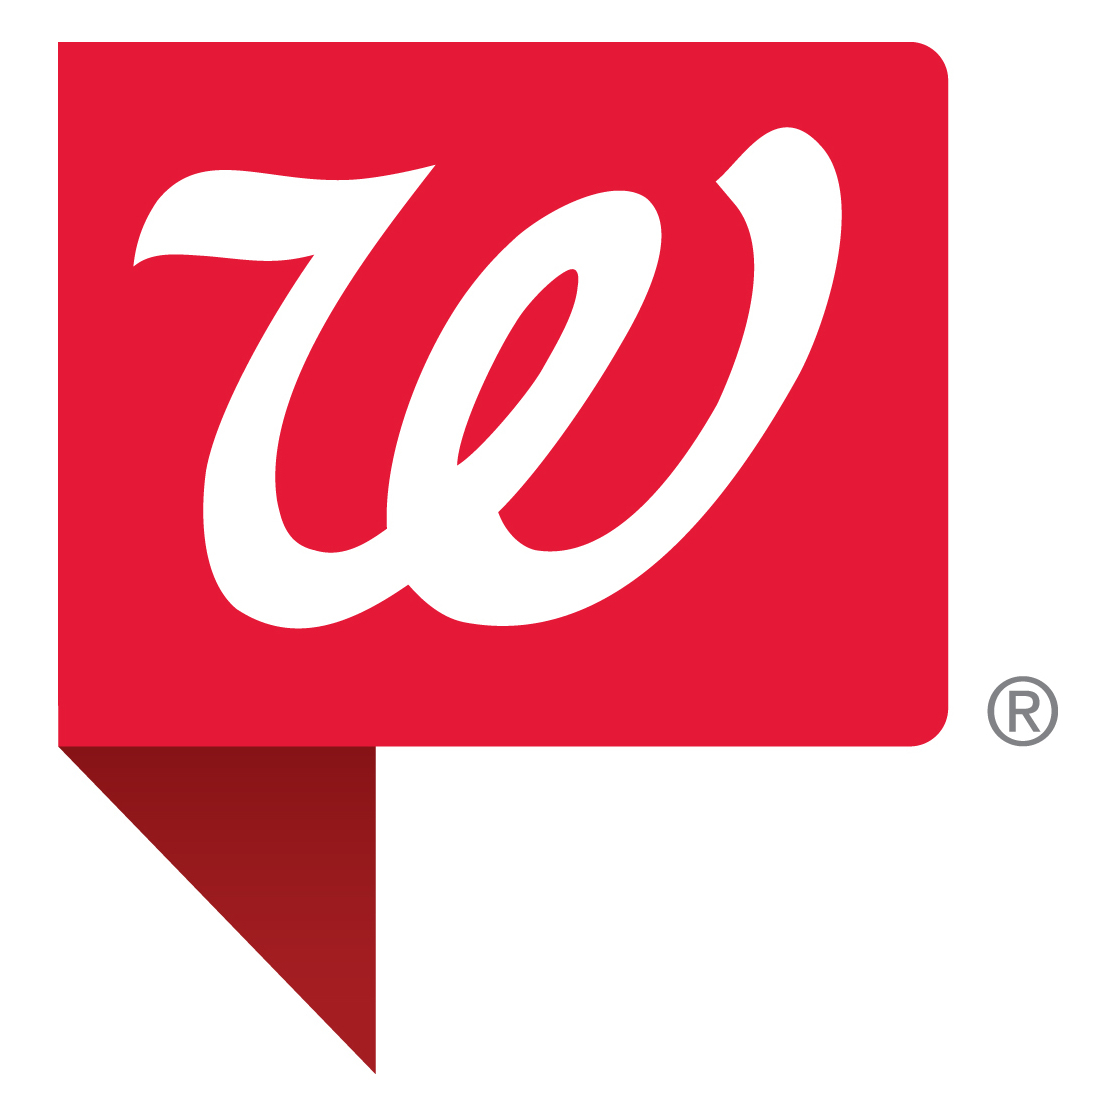 Walgreens - Warr Acres, OK - Pharmacist